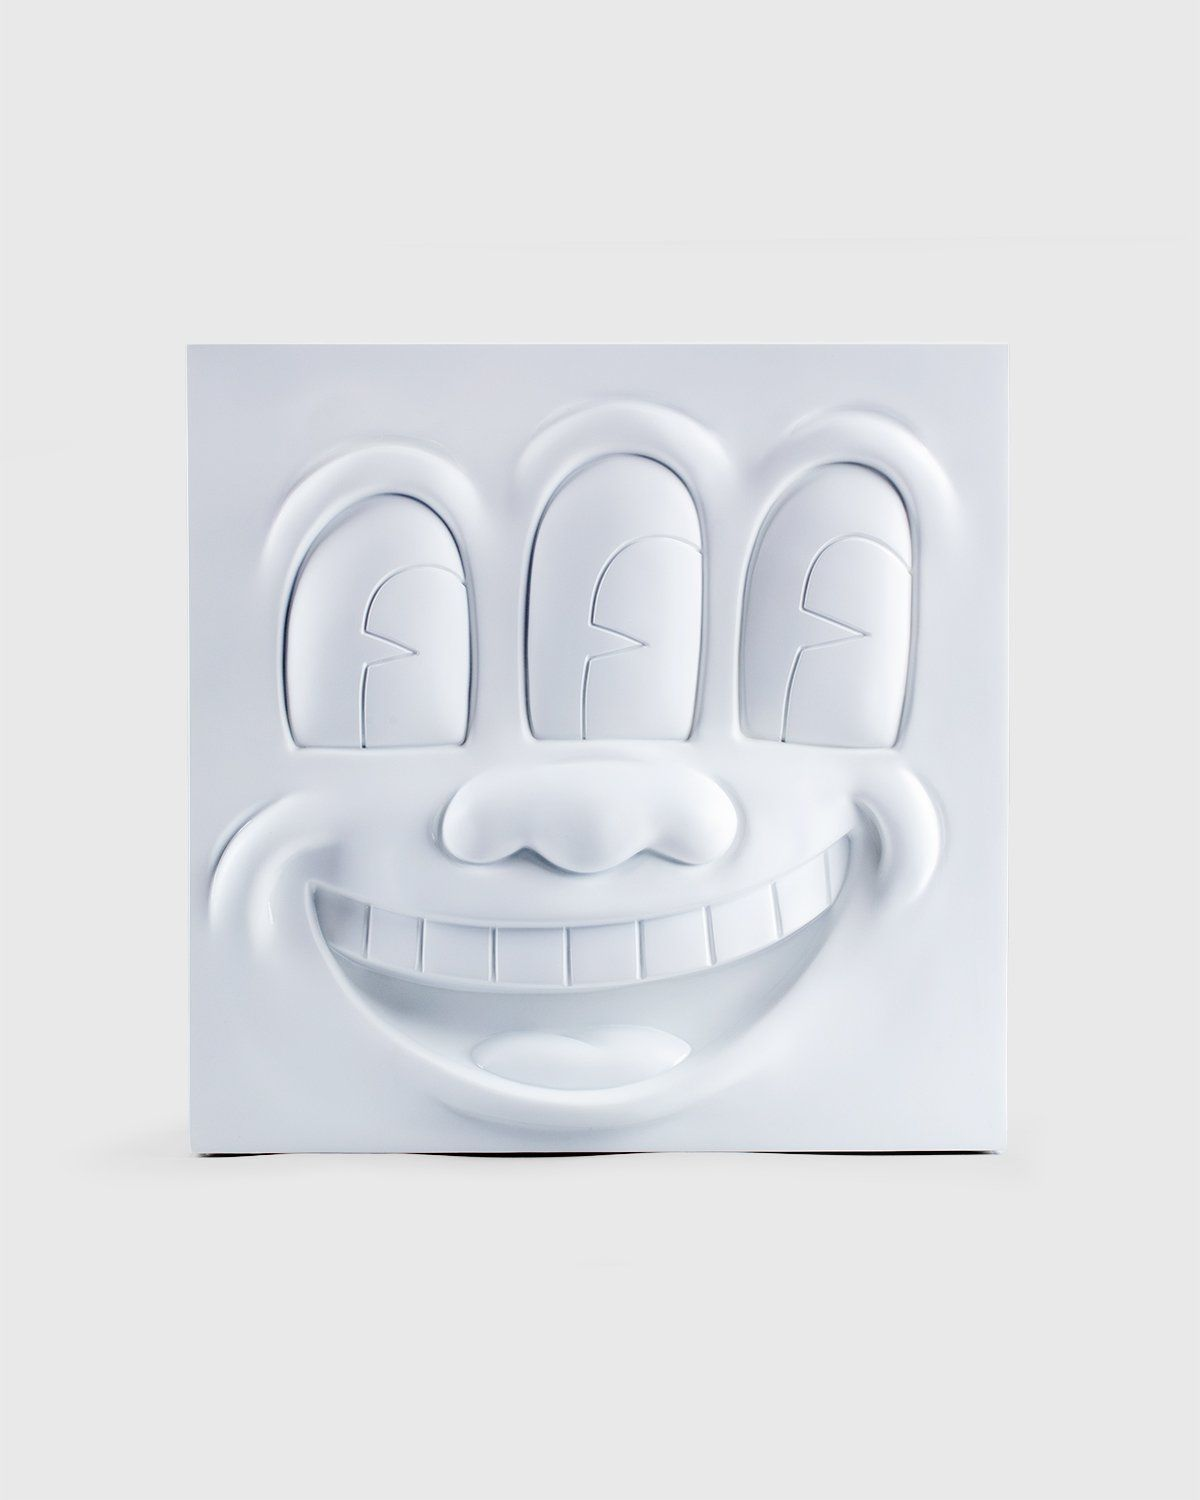 Medicom — Keith Haring Three Eyed Smiling Face Statue White - Image 1